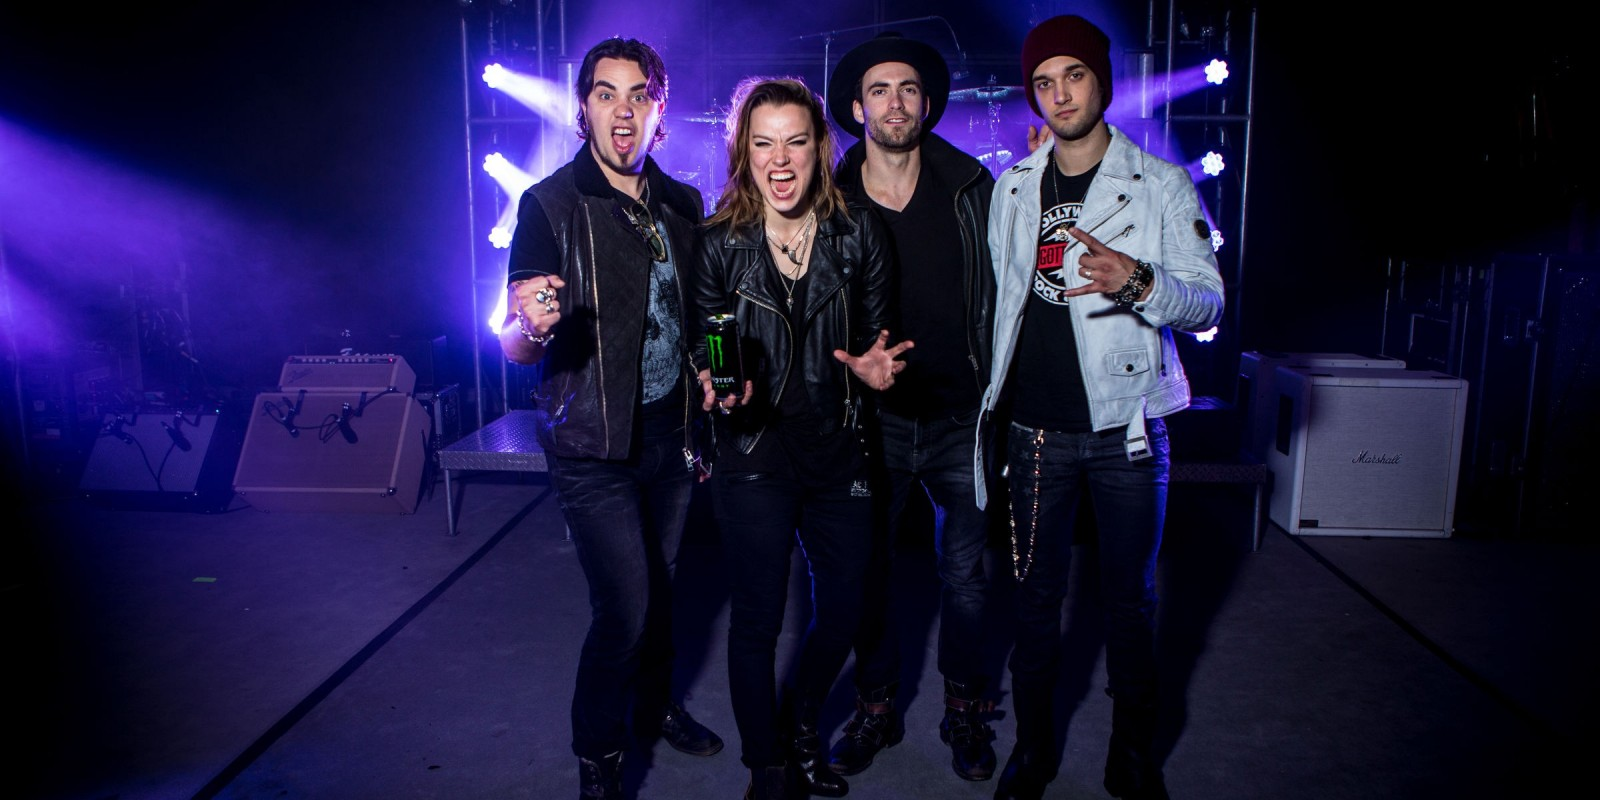 Halestorm shoot for Hero card photos